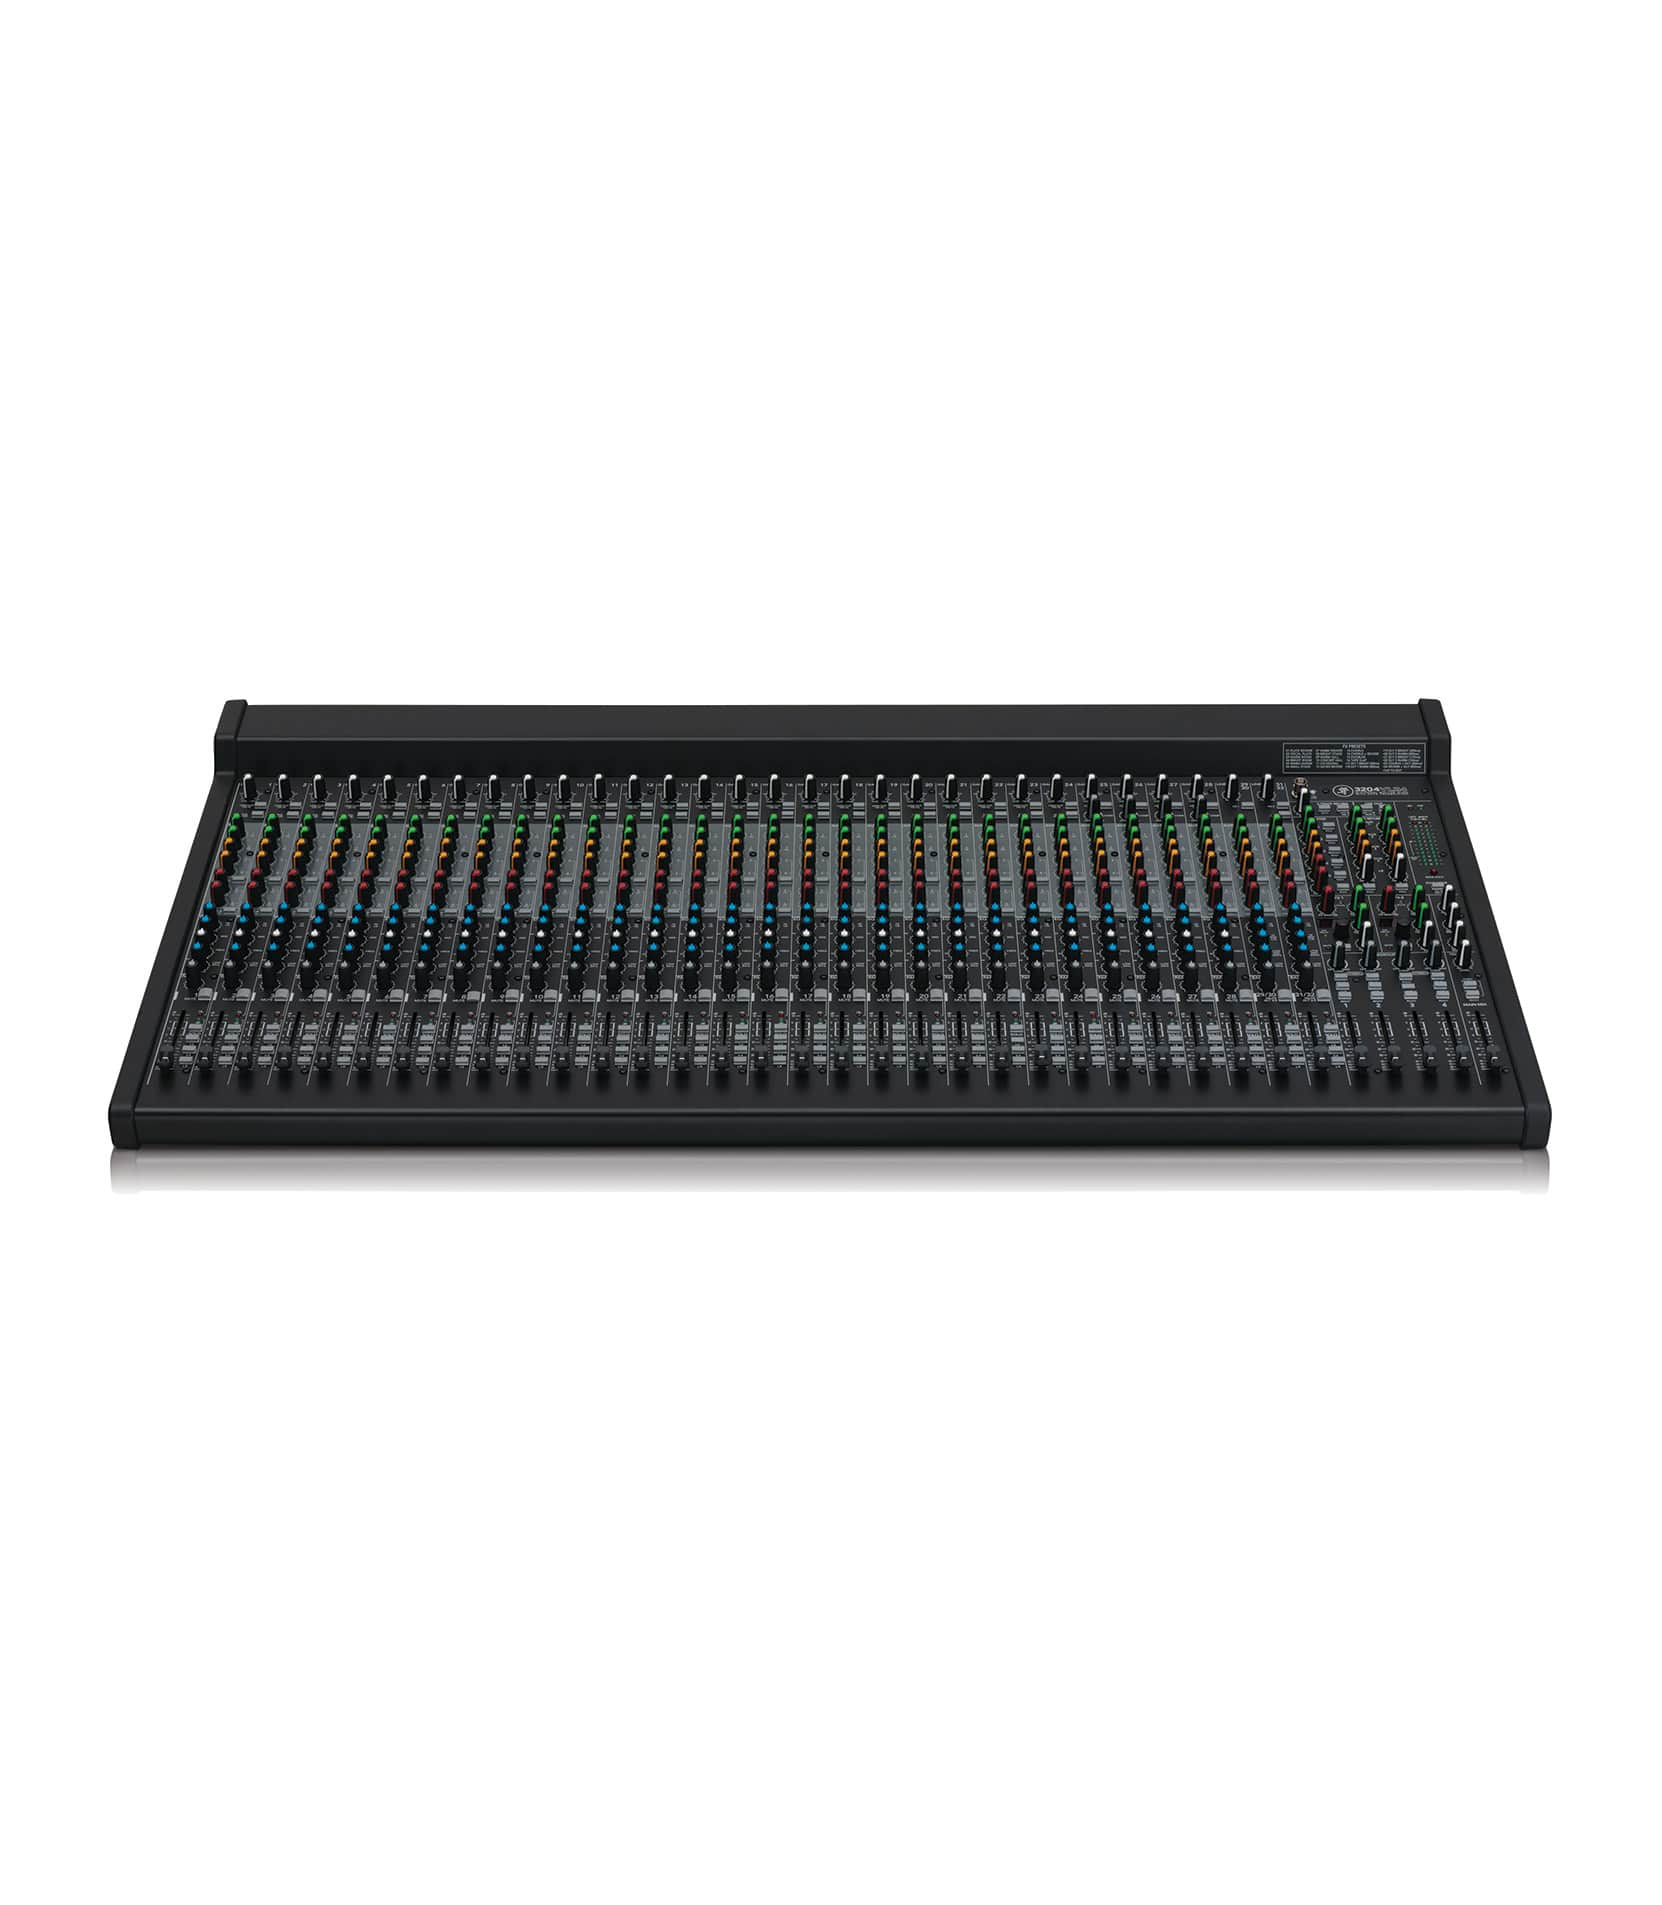 3204VLZ4 32 channel 4 bus FX Mixer with USB - Buy Online